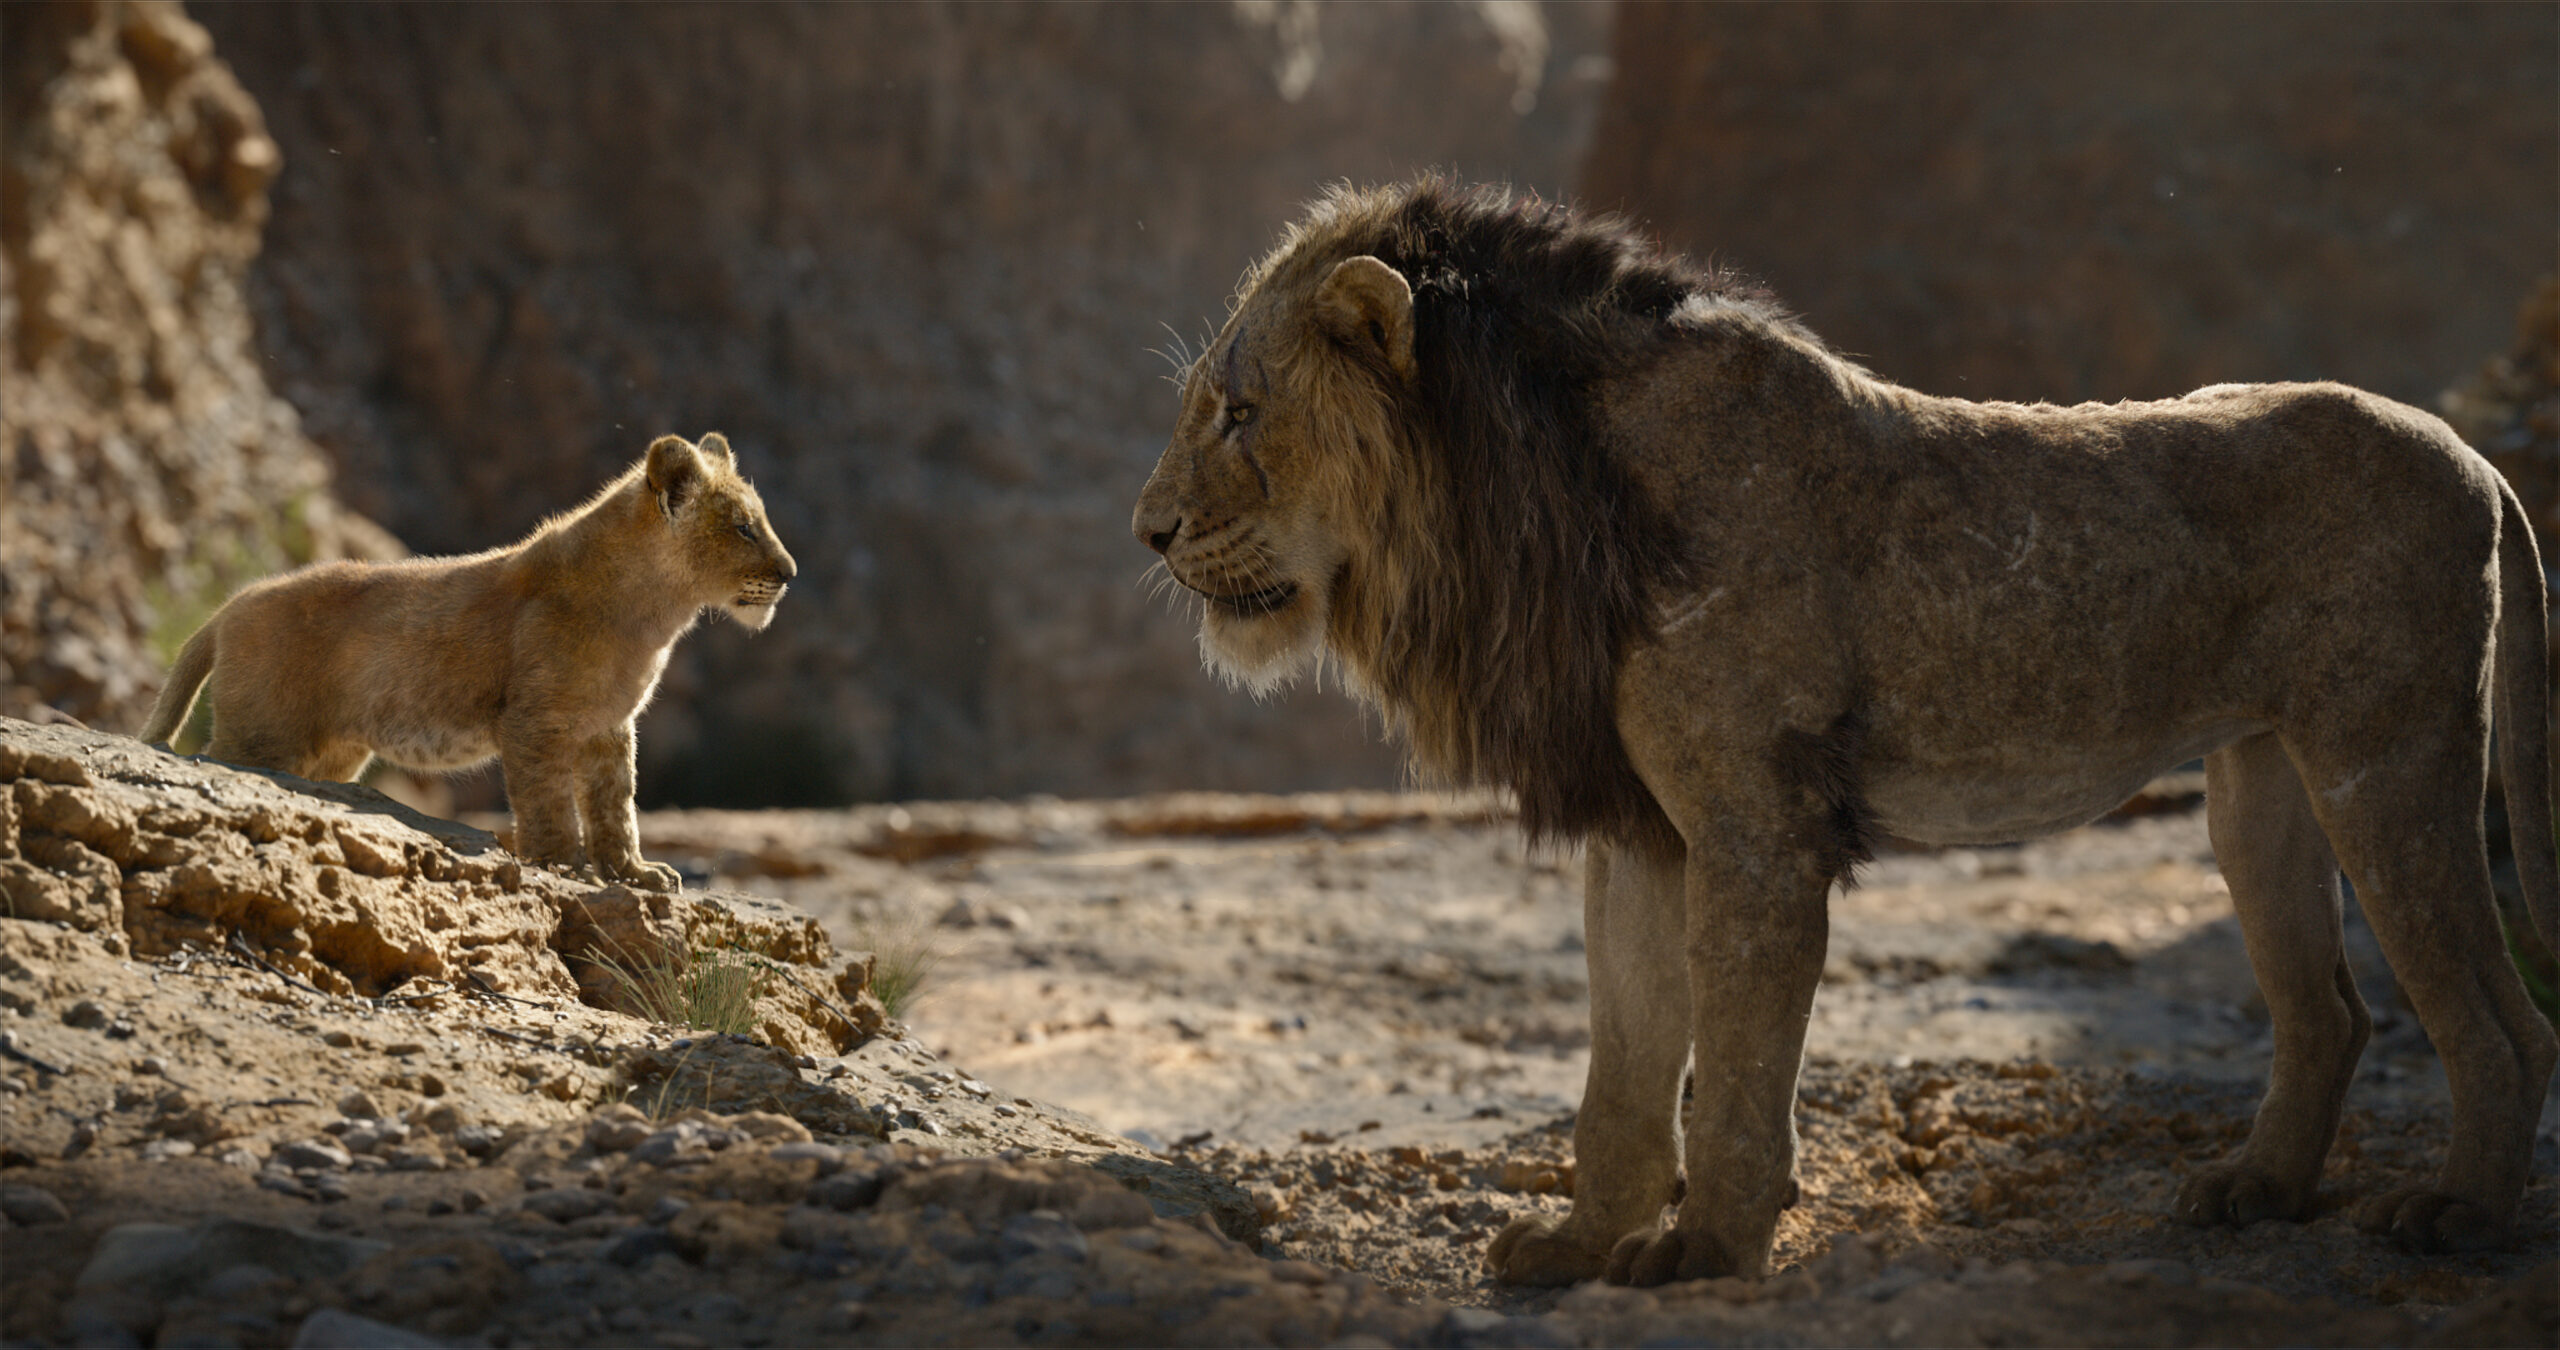 Is The Lion King Appropriate for Young Children?